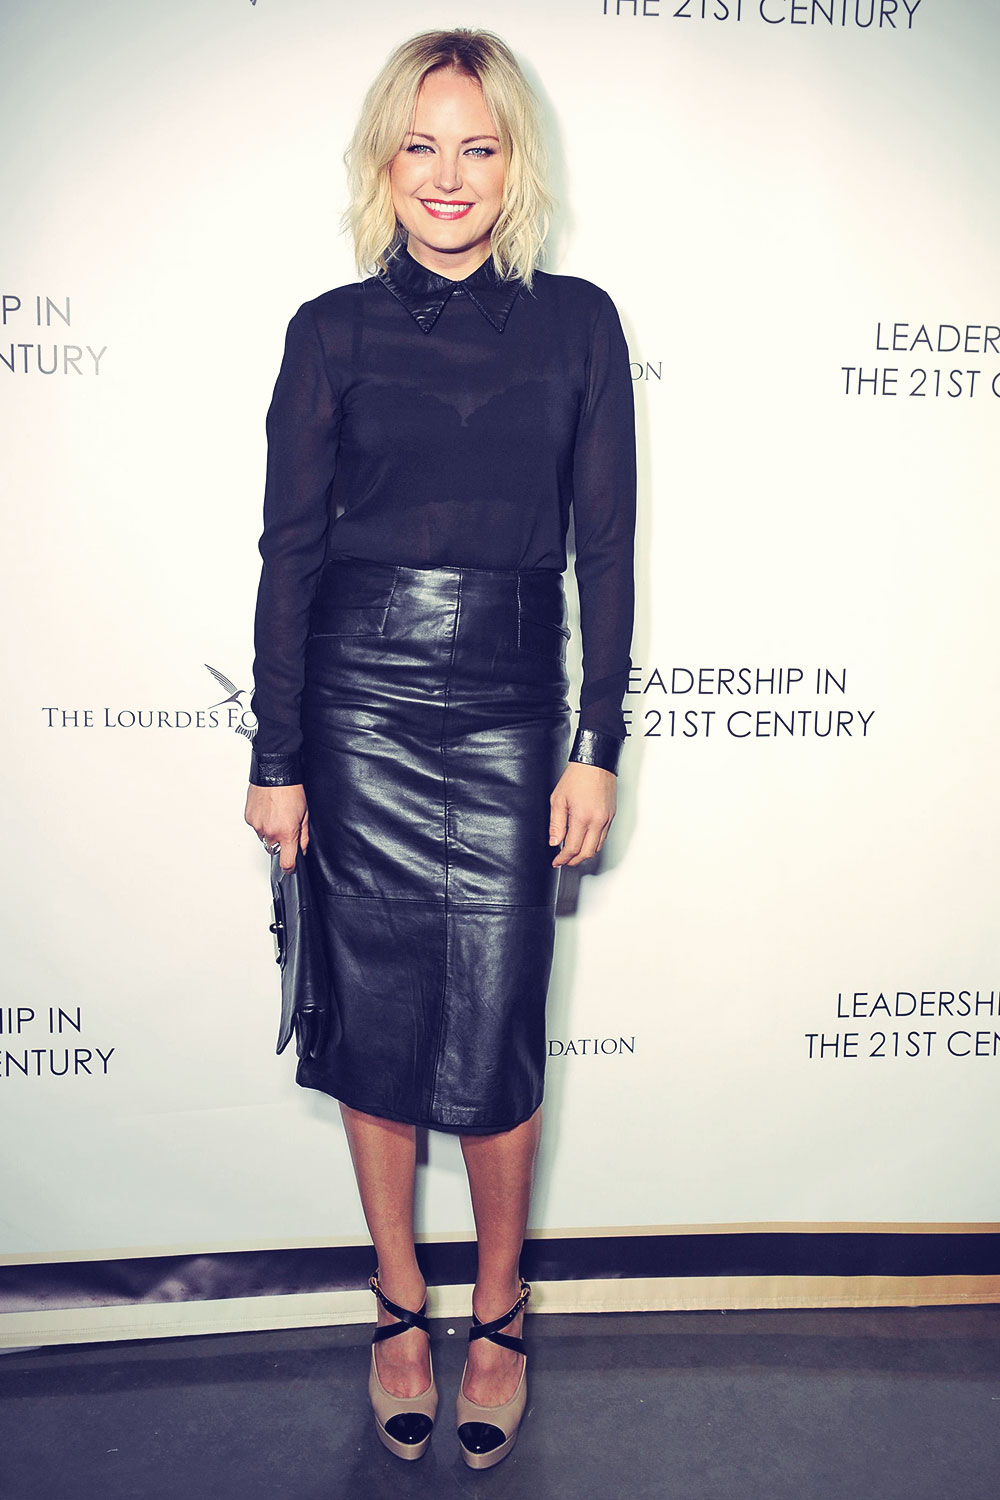 Malin Akerman Q&A With Ann Curry courtesy of the Lourdes Foundation Inglewood